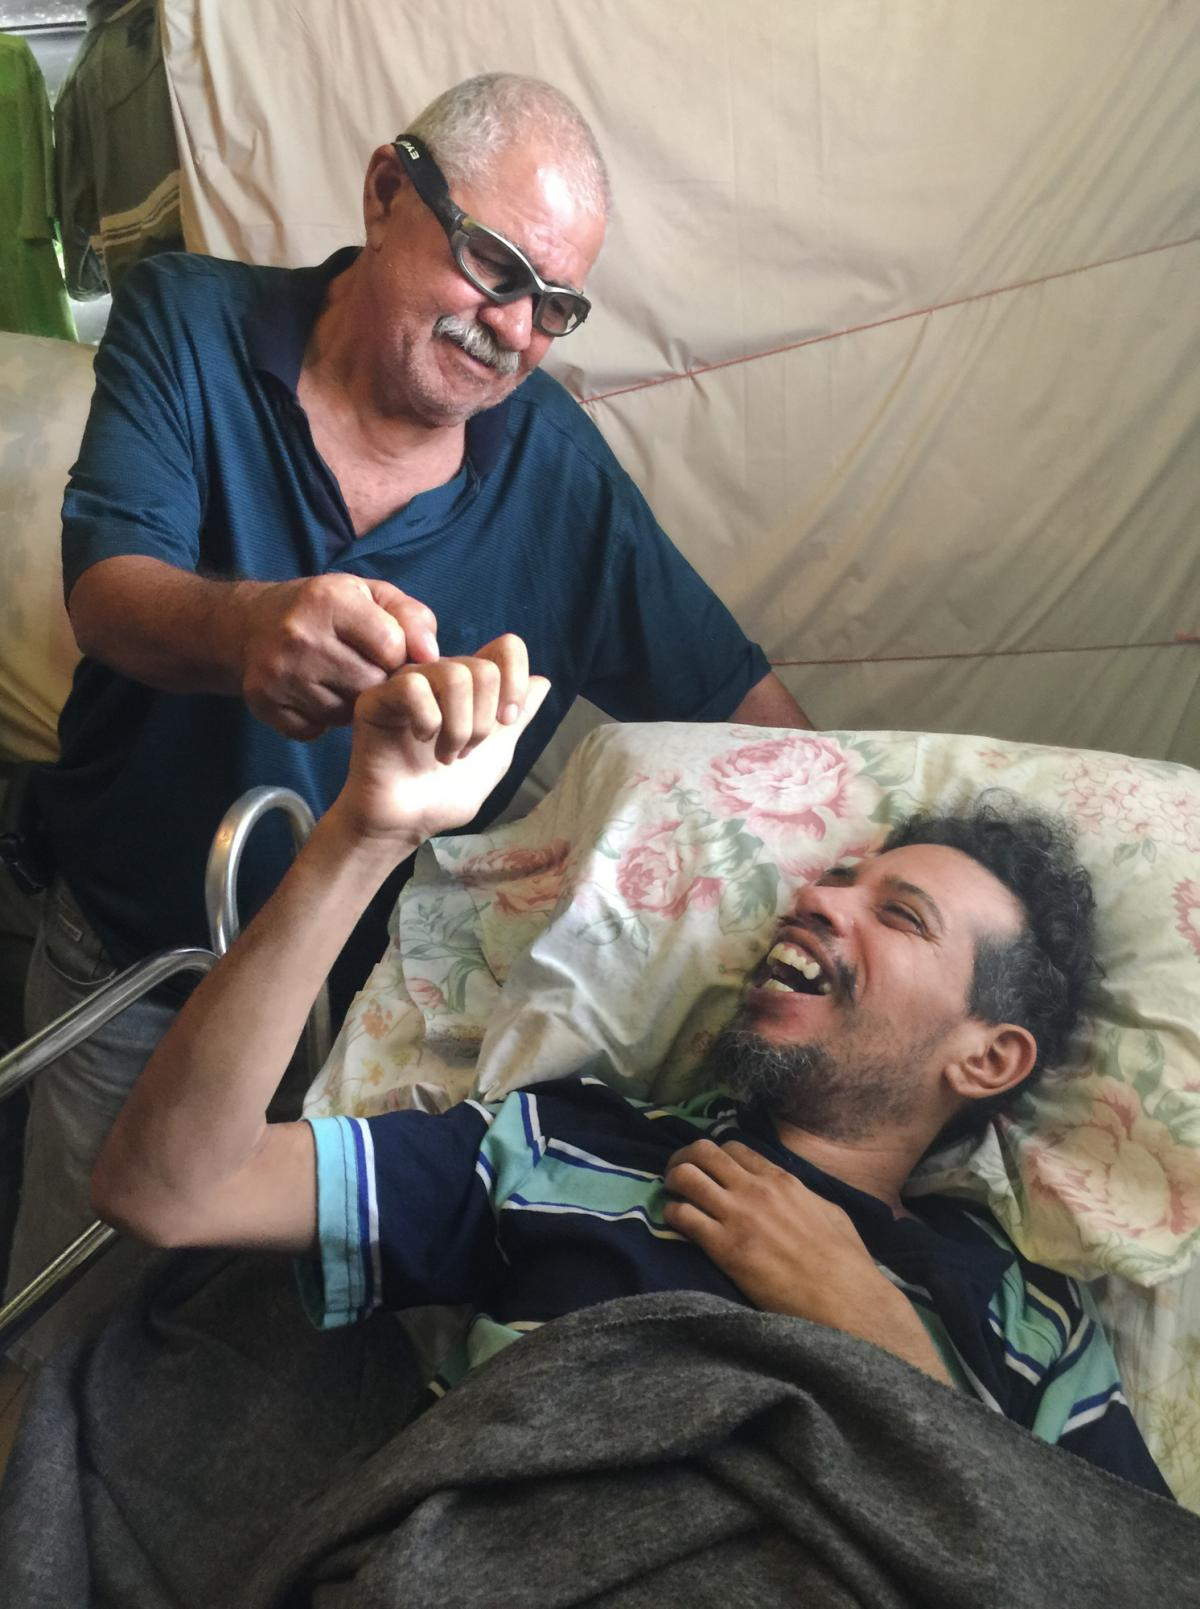 Osvaldo Martinez (left) takes care of his increasingly disabled son, Osvaldo Daniel Martinez, who is on Medicaid. With few neurologists on the island, they have not been able to get the younger Martinez an appointment with a specialist who could formally